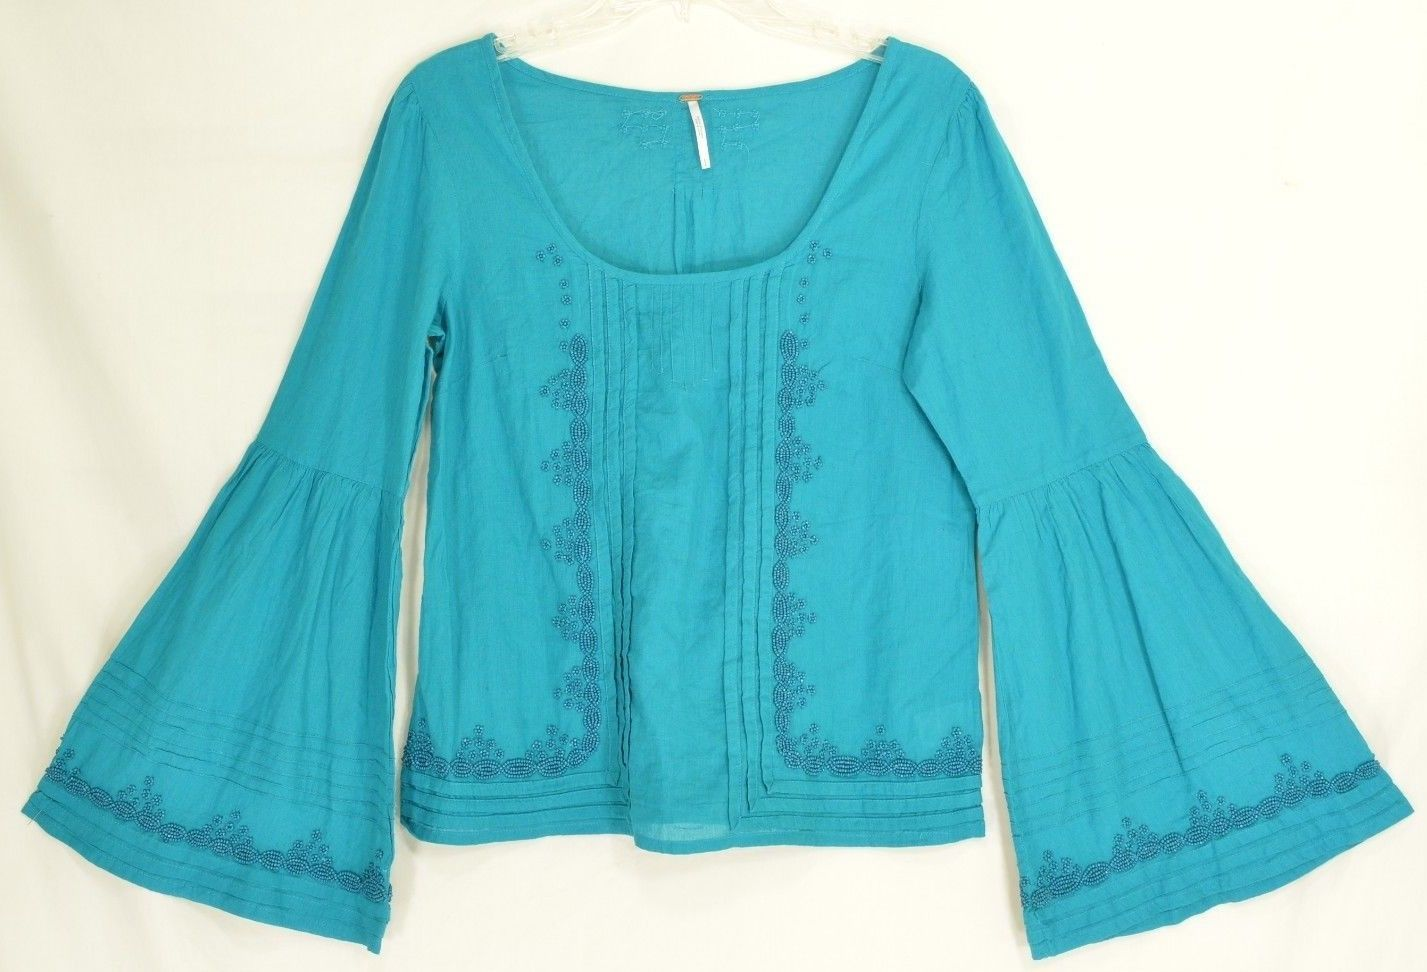 Free People top SZ S turquoise teal beaded long bell sleeves hippie boho gypsy image 4